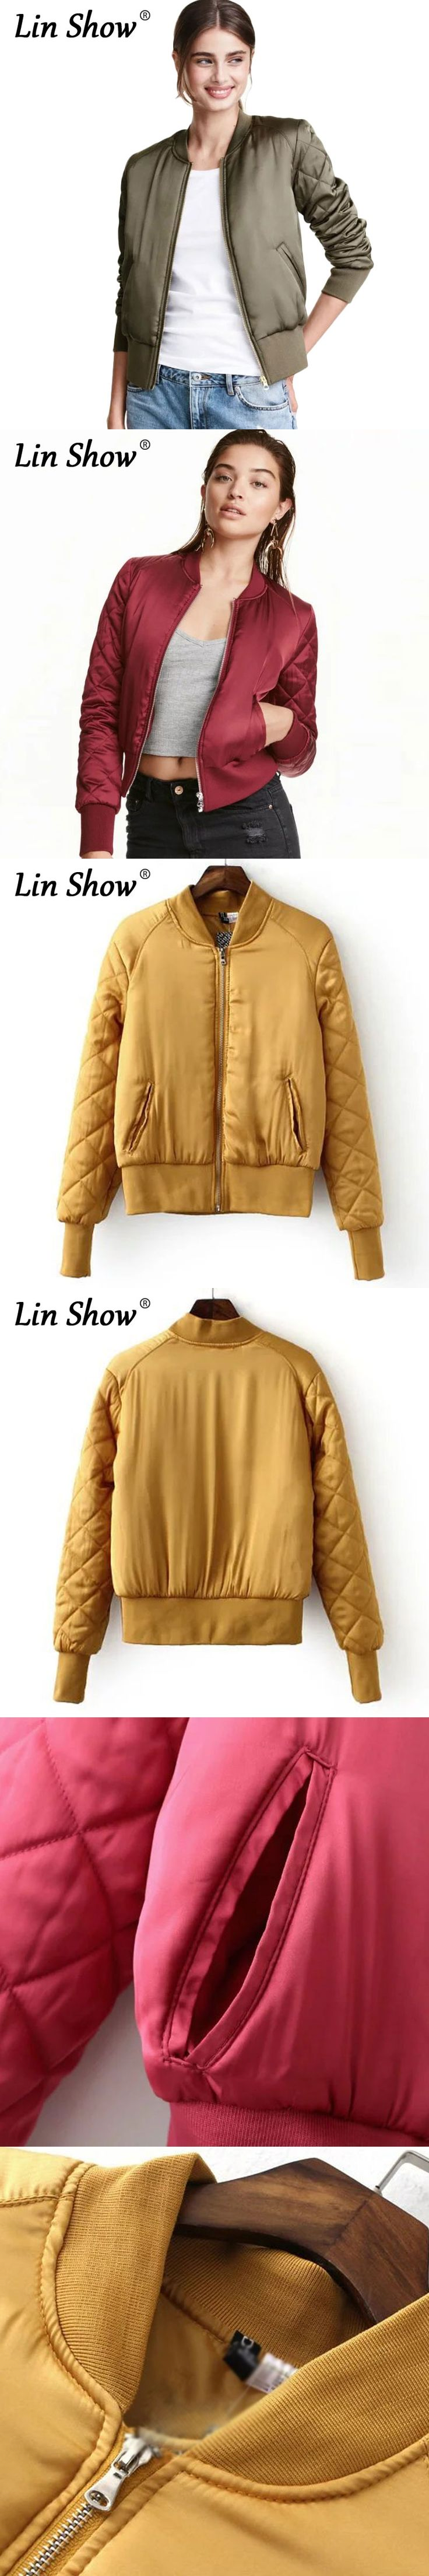 LINSHOW Six Colorful Satin Chiffon Women Baseball Jackets Solid Army Green Zipper Padded Bomber Autumn Casual Ladies Coat Jacket